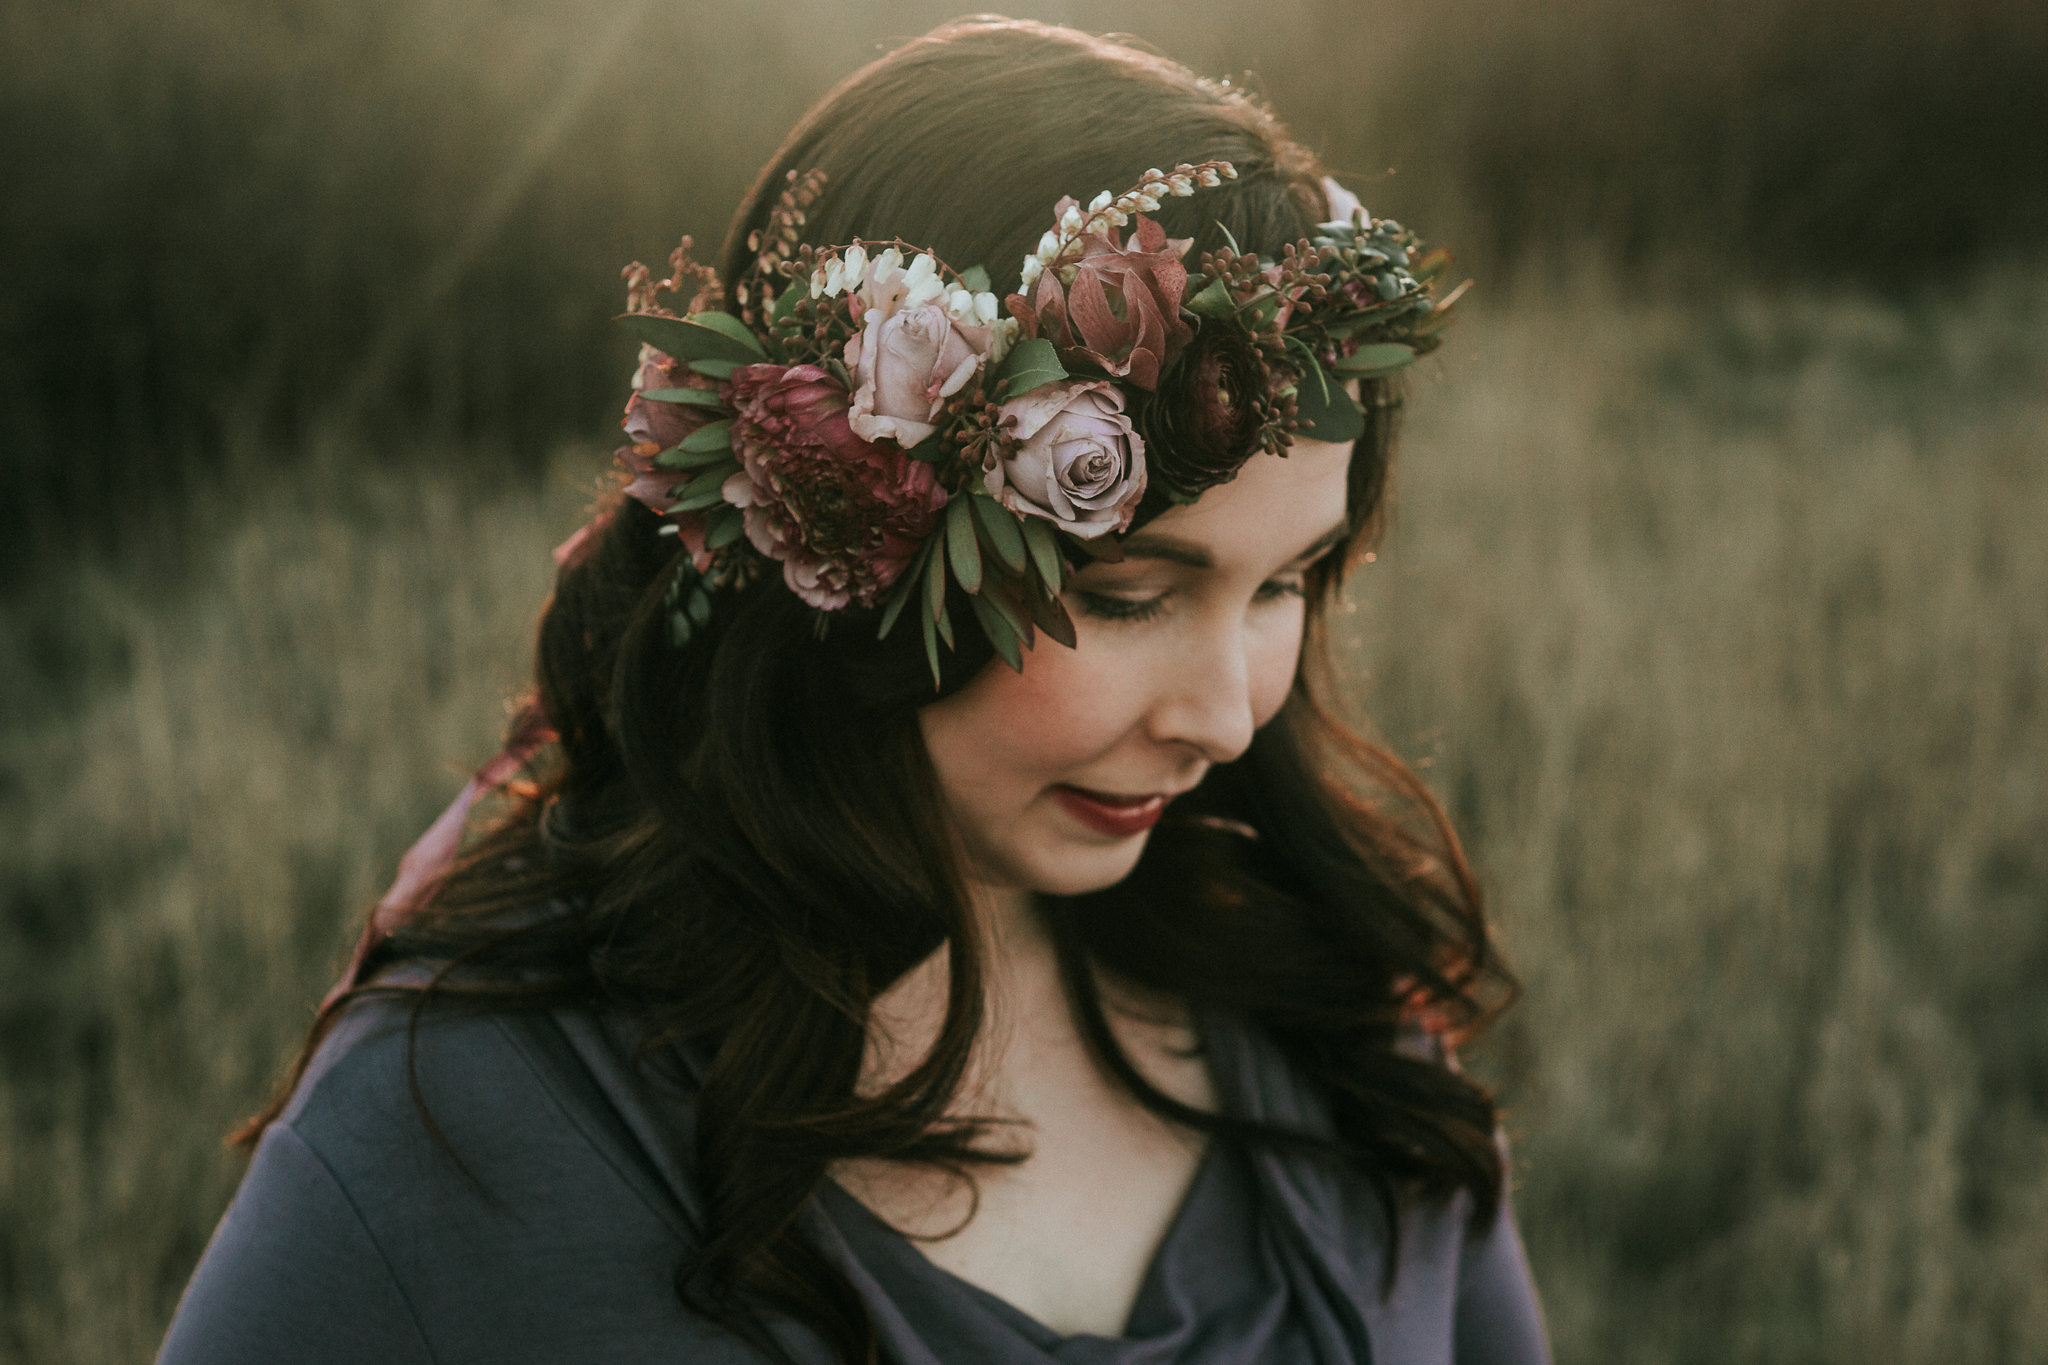 Flower Crown For Whidbey Island Maternity Shoot By Tobey Nelson Events Image By Team Shaw Photography 6 Tobey Nelson Weddings Events